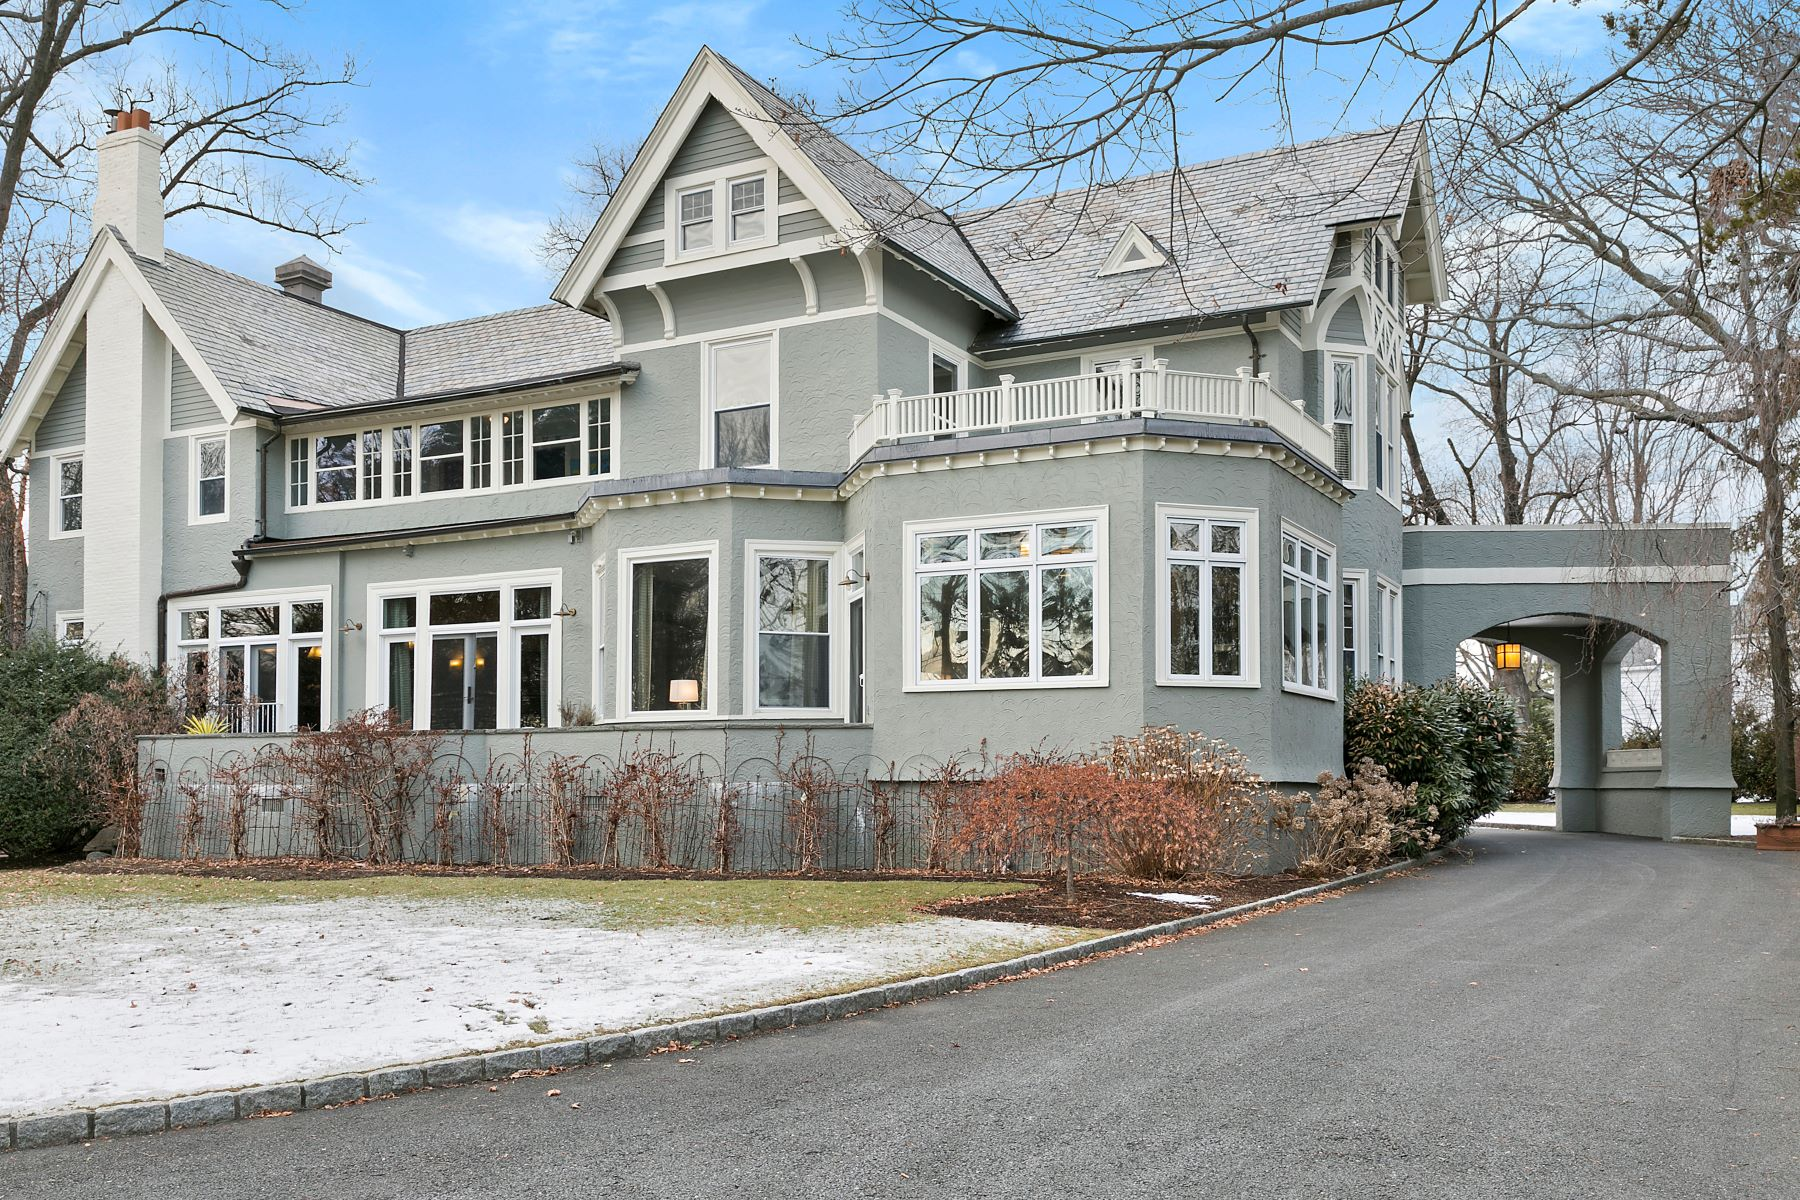 Single Family Home for Sale at Style and Sophistication in Larchmont Manor 2 Oak Bluff Avenue, Larchmont, New York, 10538 United States